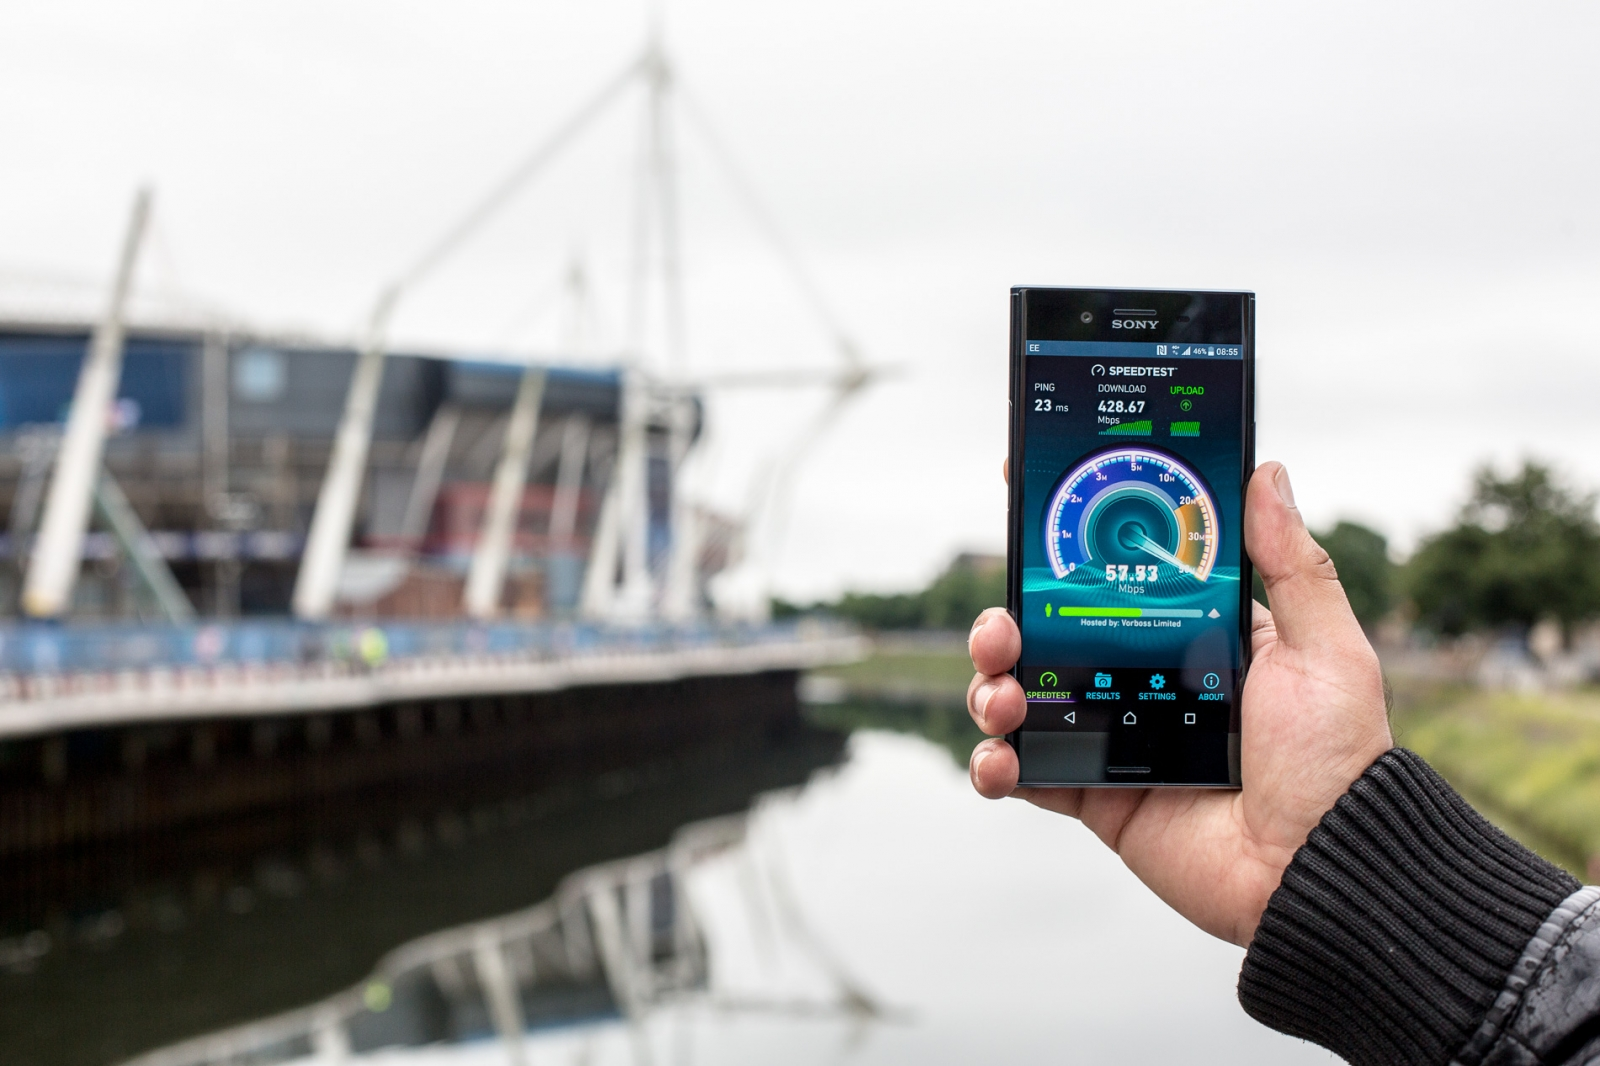 EE achieves 428Mbps data speeds in Cardiff